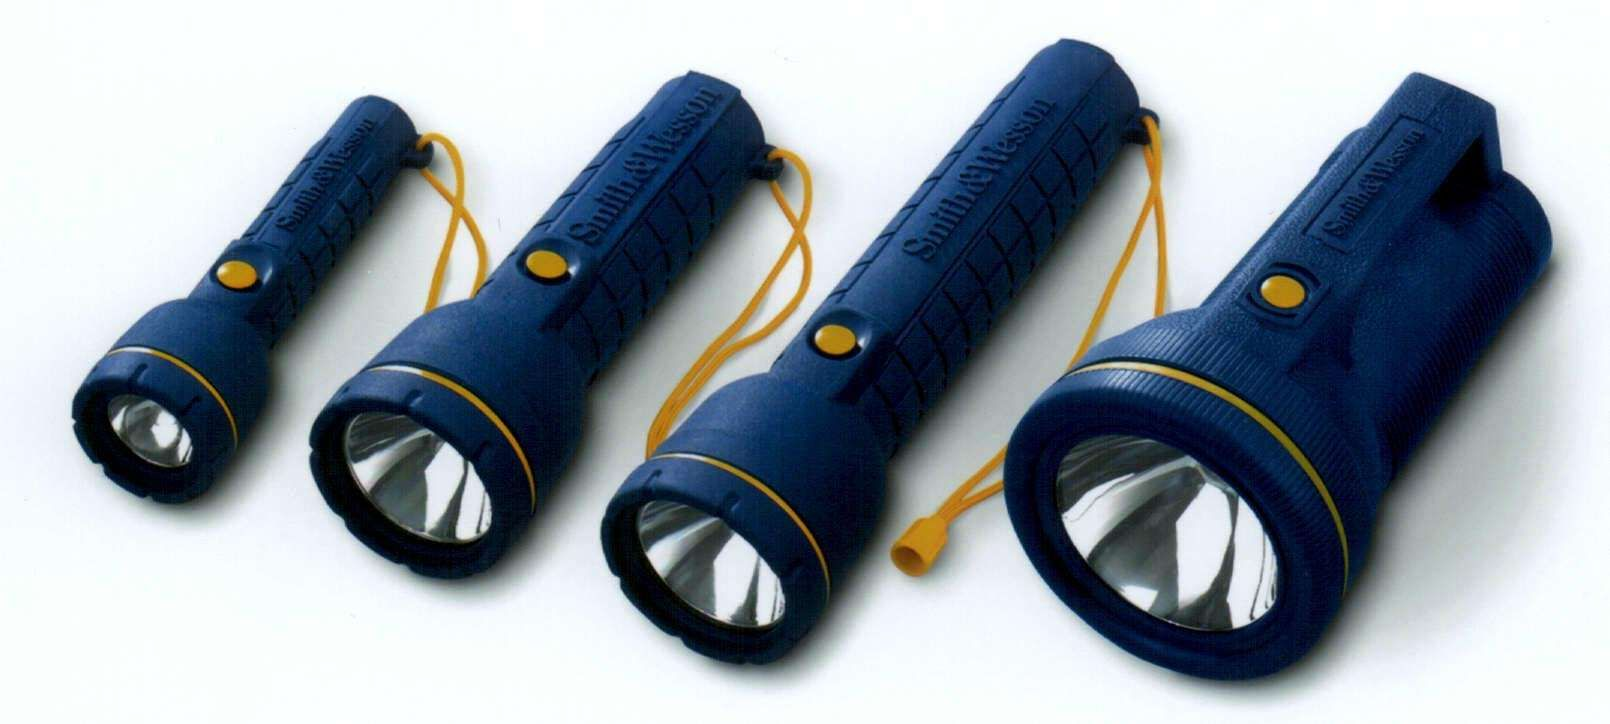 Save 80% On Flashlights Save Up to 80% On Flashlights selected Items of Tmart @ http://www.couponssmart.com/store/?si=Tmart